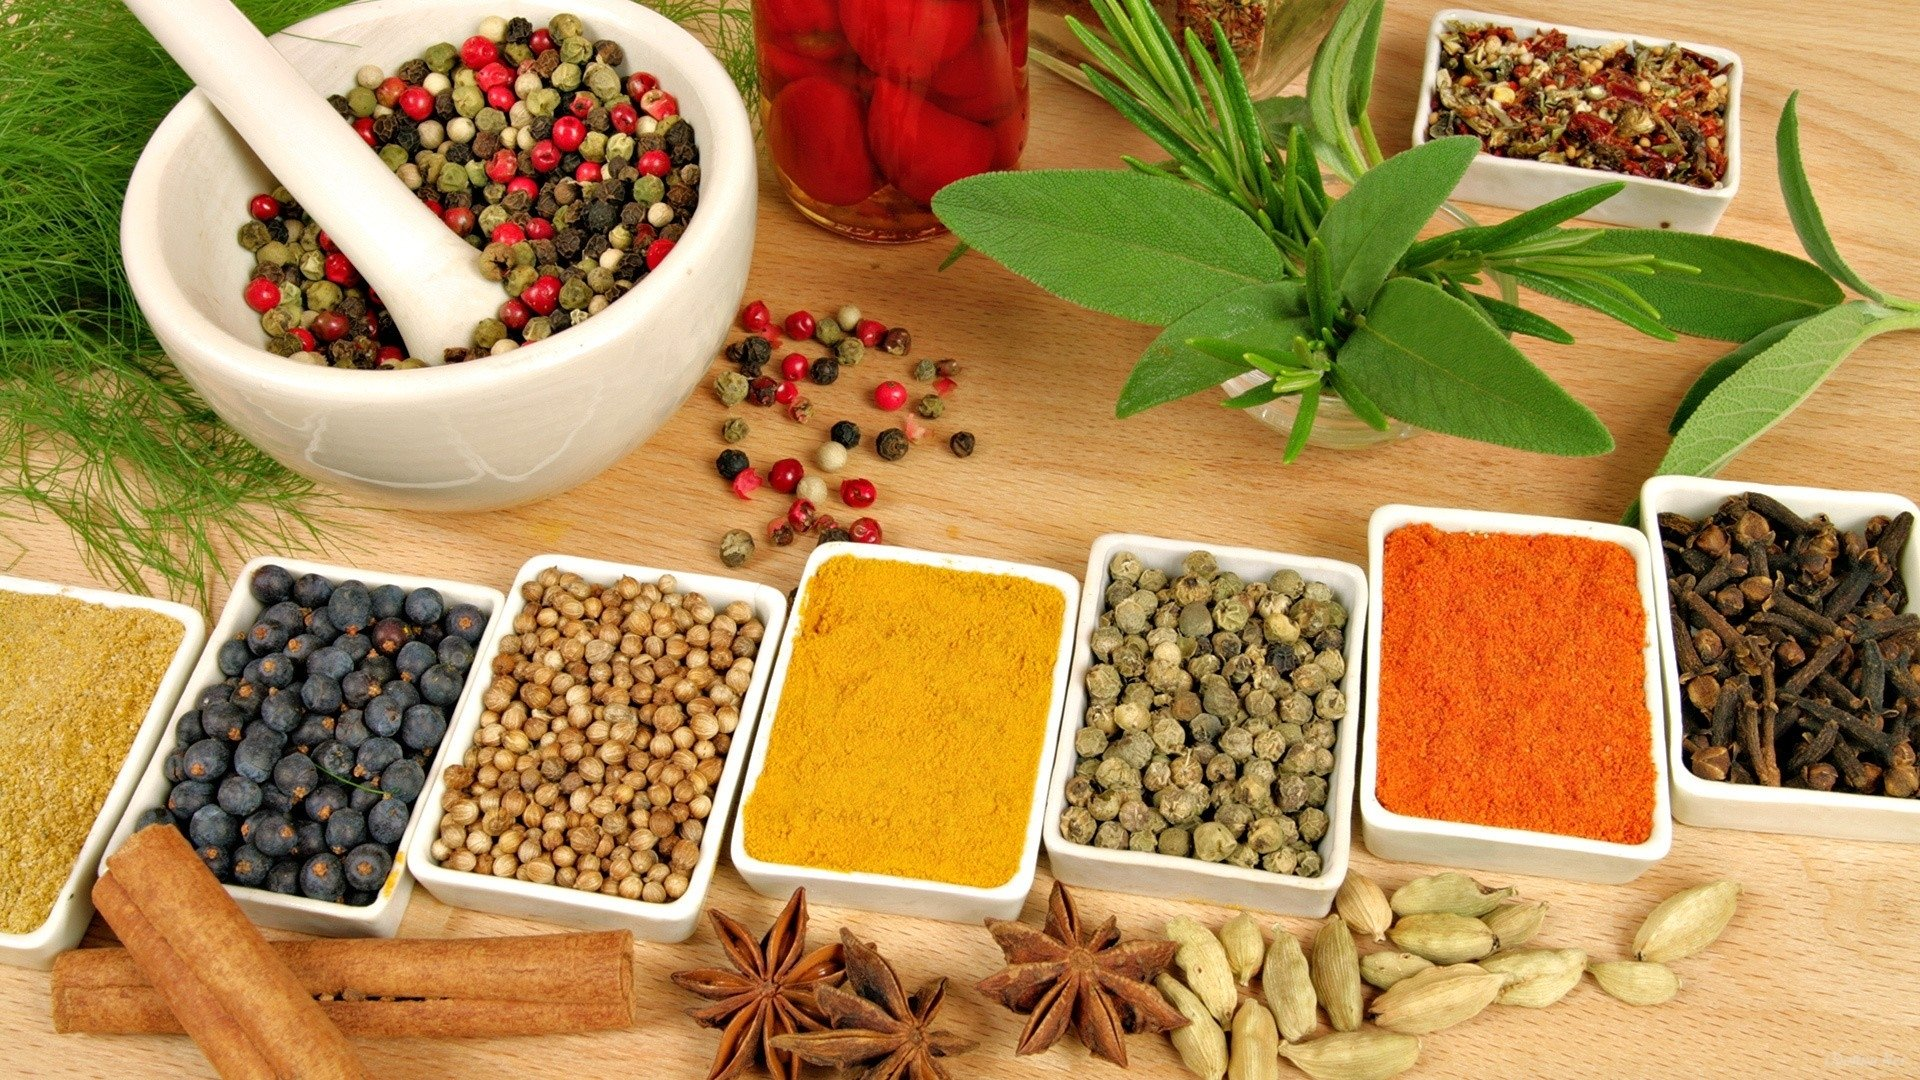 Herbal Wallpaper Herbs And Spices Hd Wallpaper Background Image 1920x1080 Id